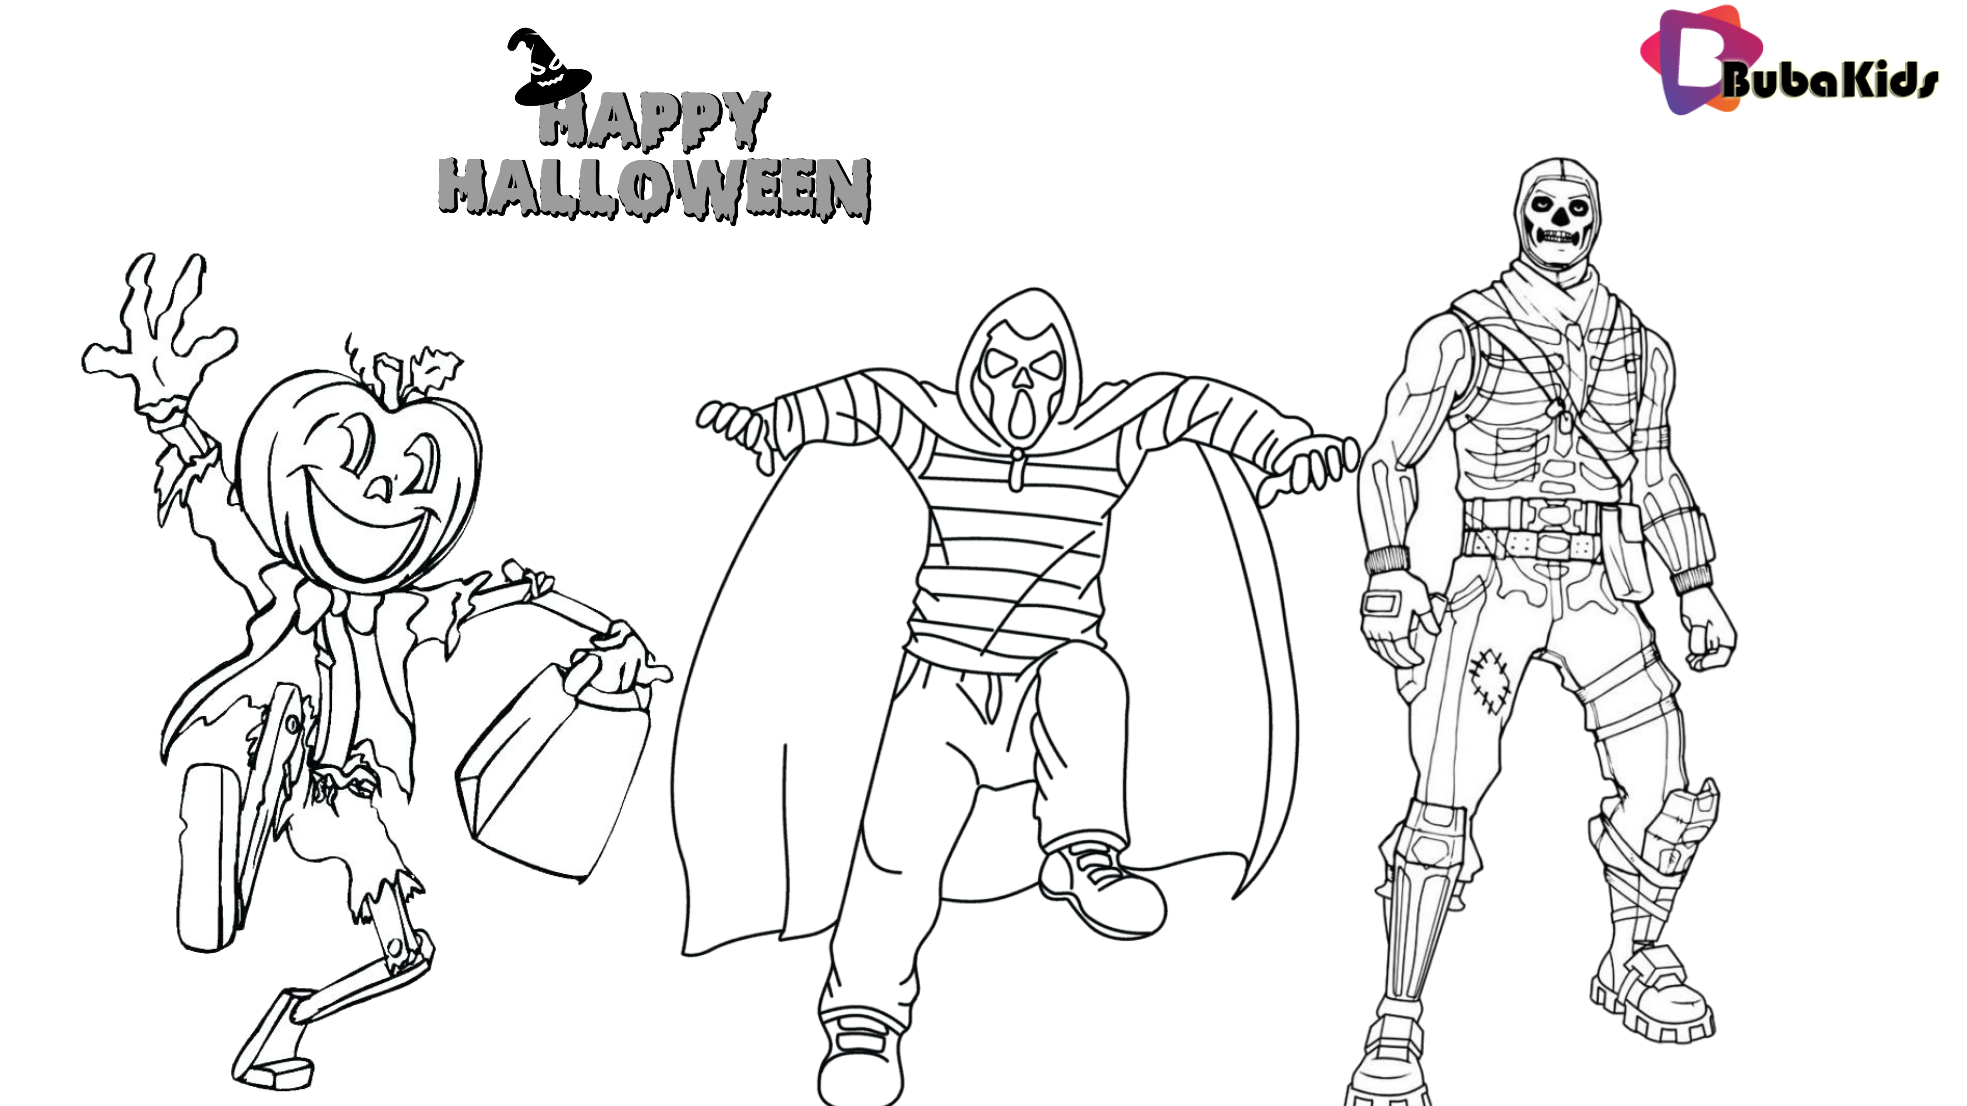 Costume For Halloween Party 2019 Printable And Coloring Page Fortnite Halloween Skull Trooper Fo Cartoon Coloring Pages Coloring Pages Halloween Coloring